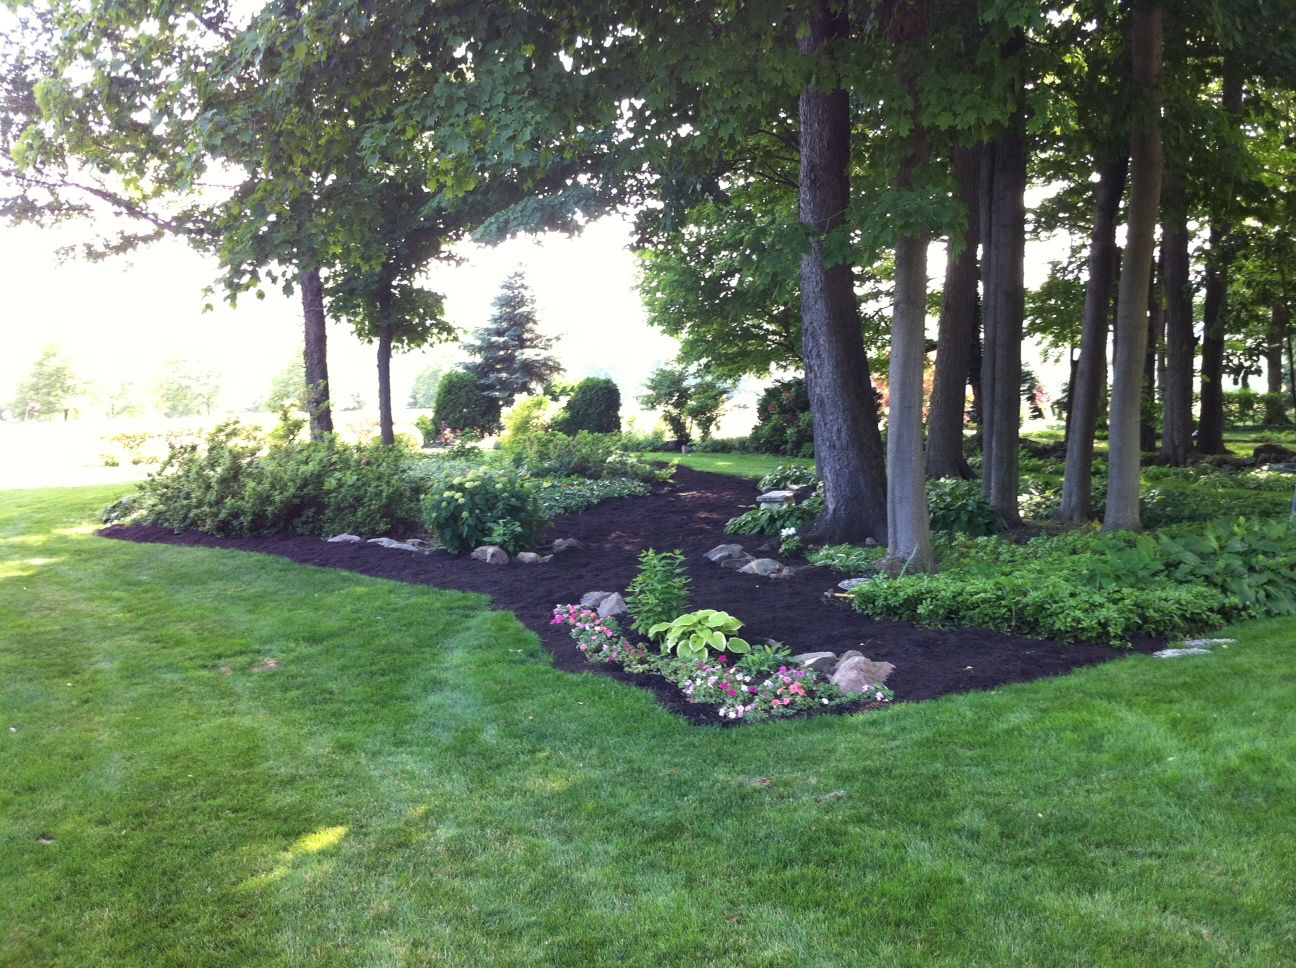 lanscape around trees backyard gardening and outdoors